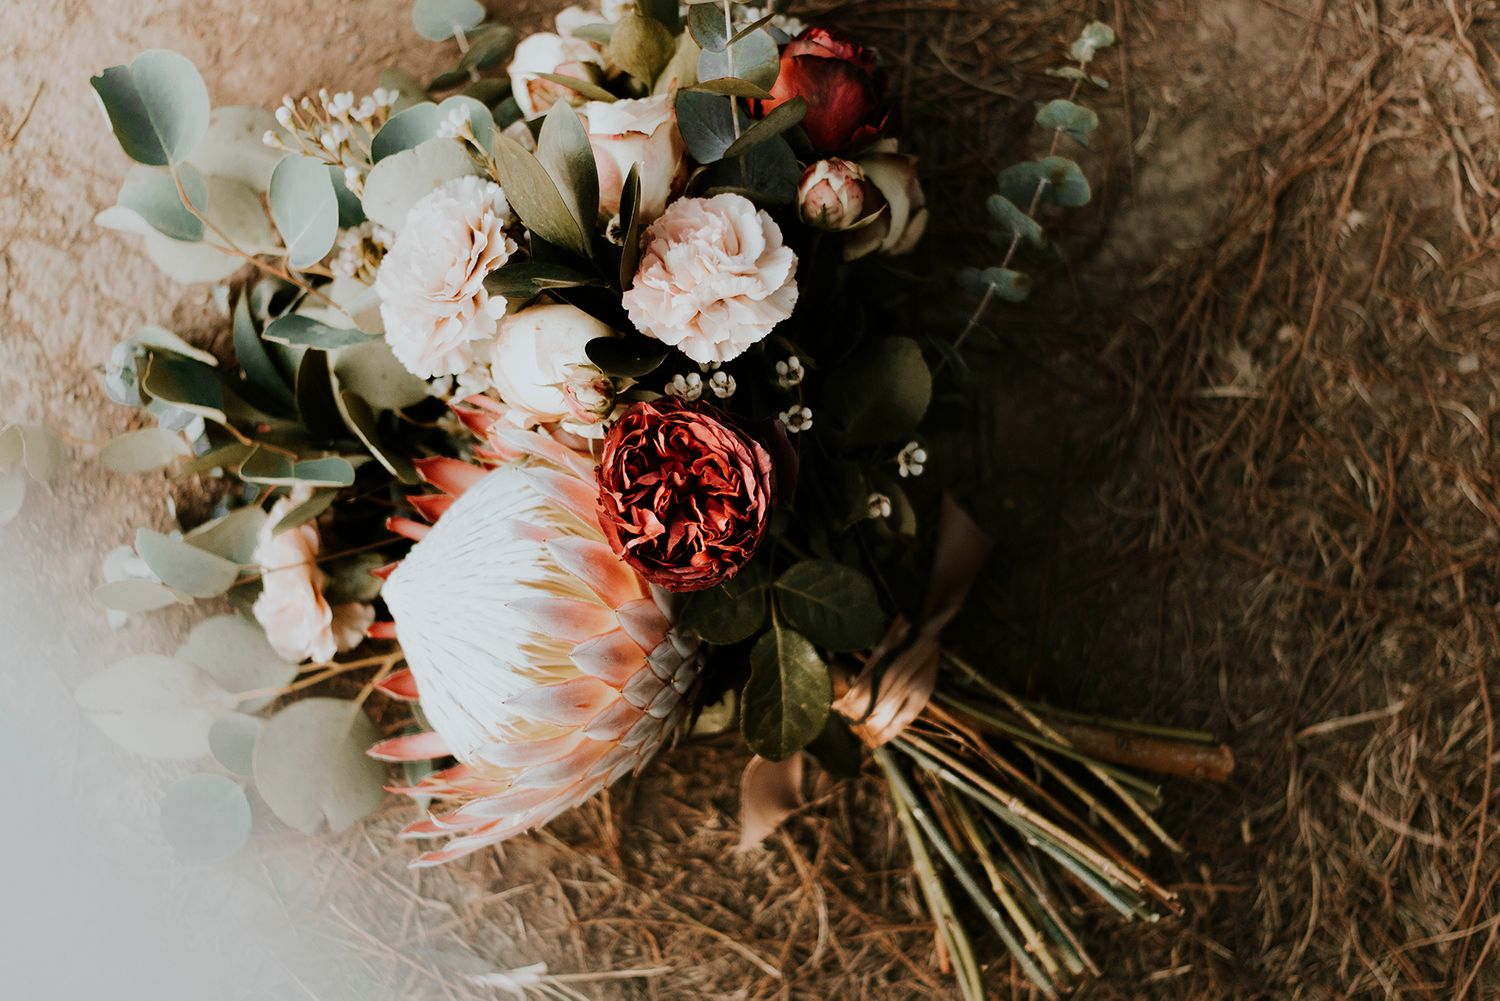 Bride Groom wedding bouquet inspiration photography photographer engagement photoshoot fotograwer videography love trou